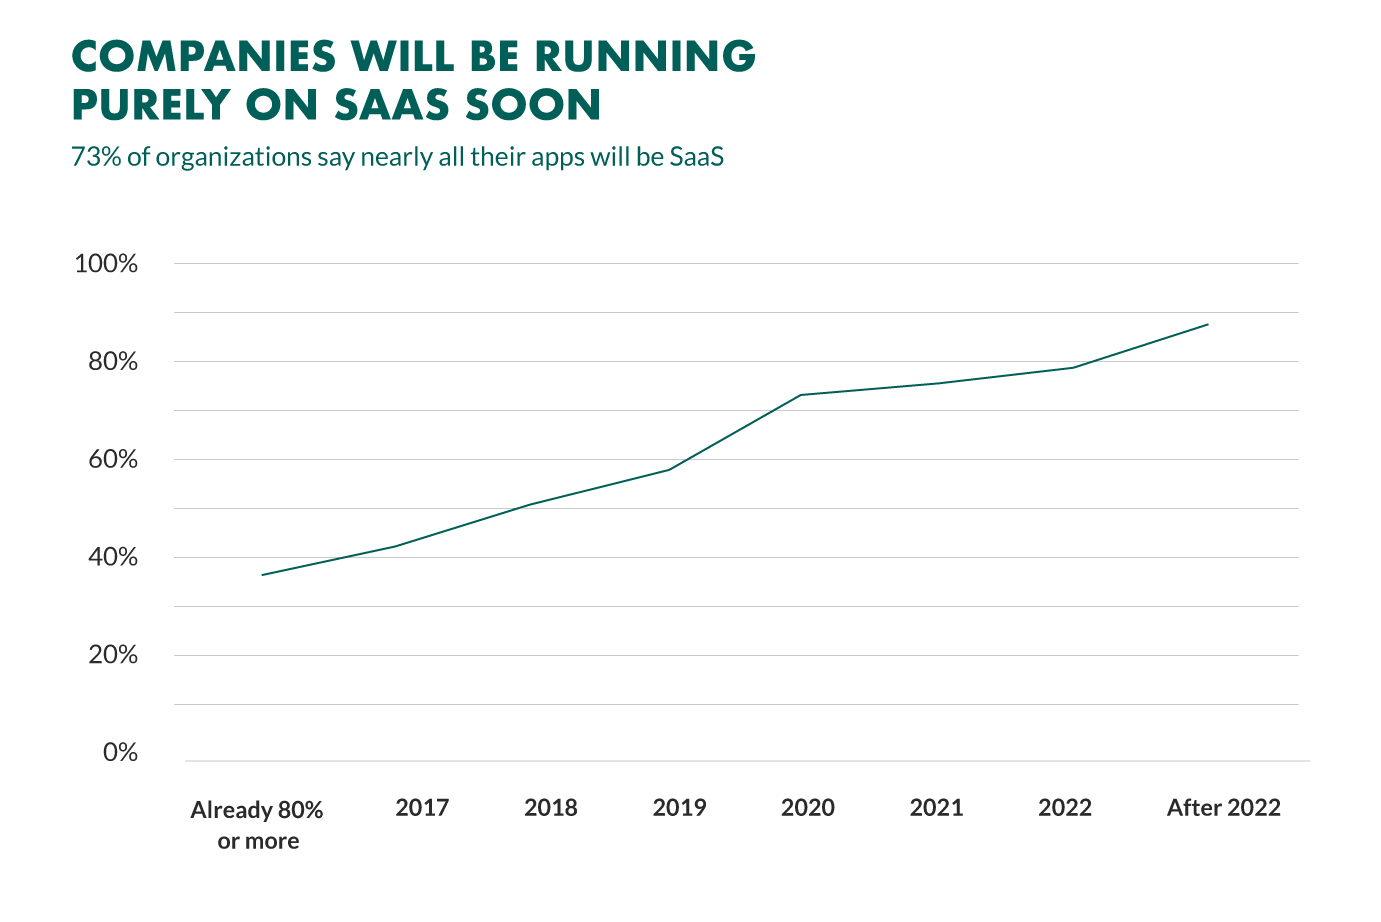 saas-powered-companies-by-2020.png